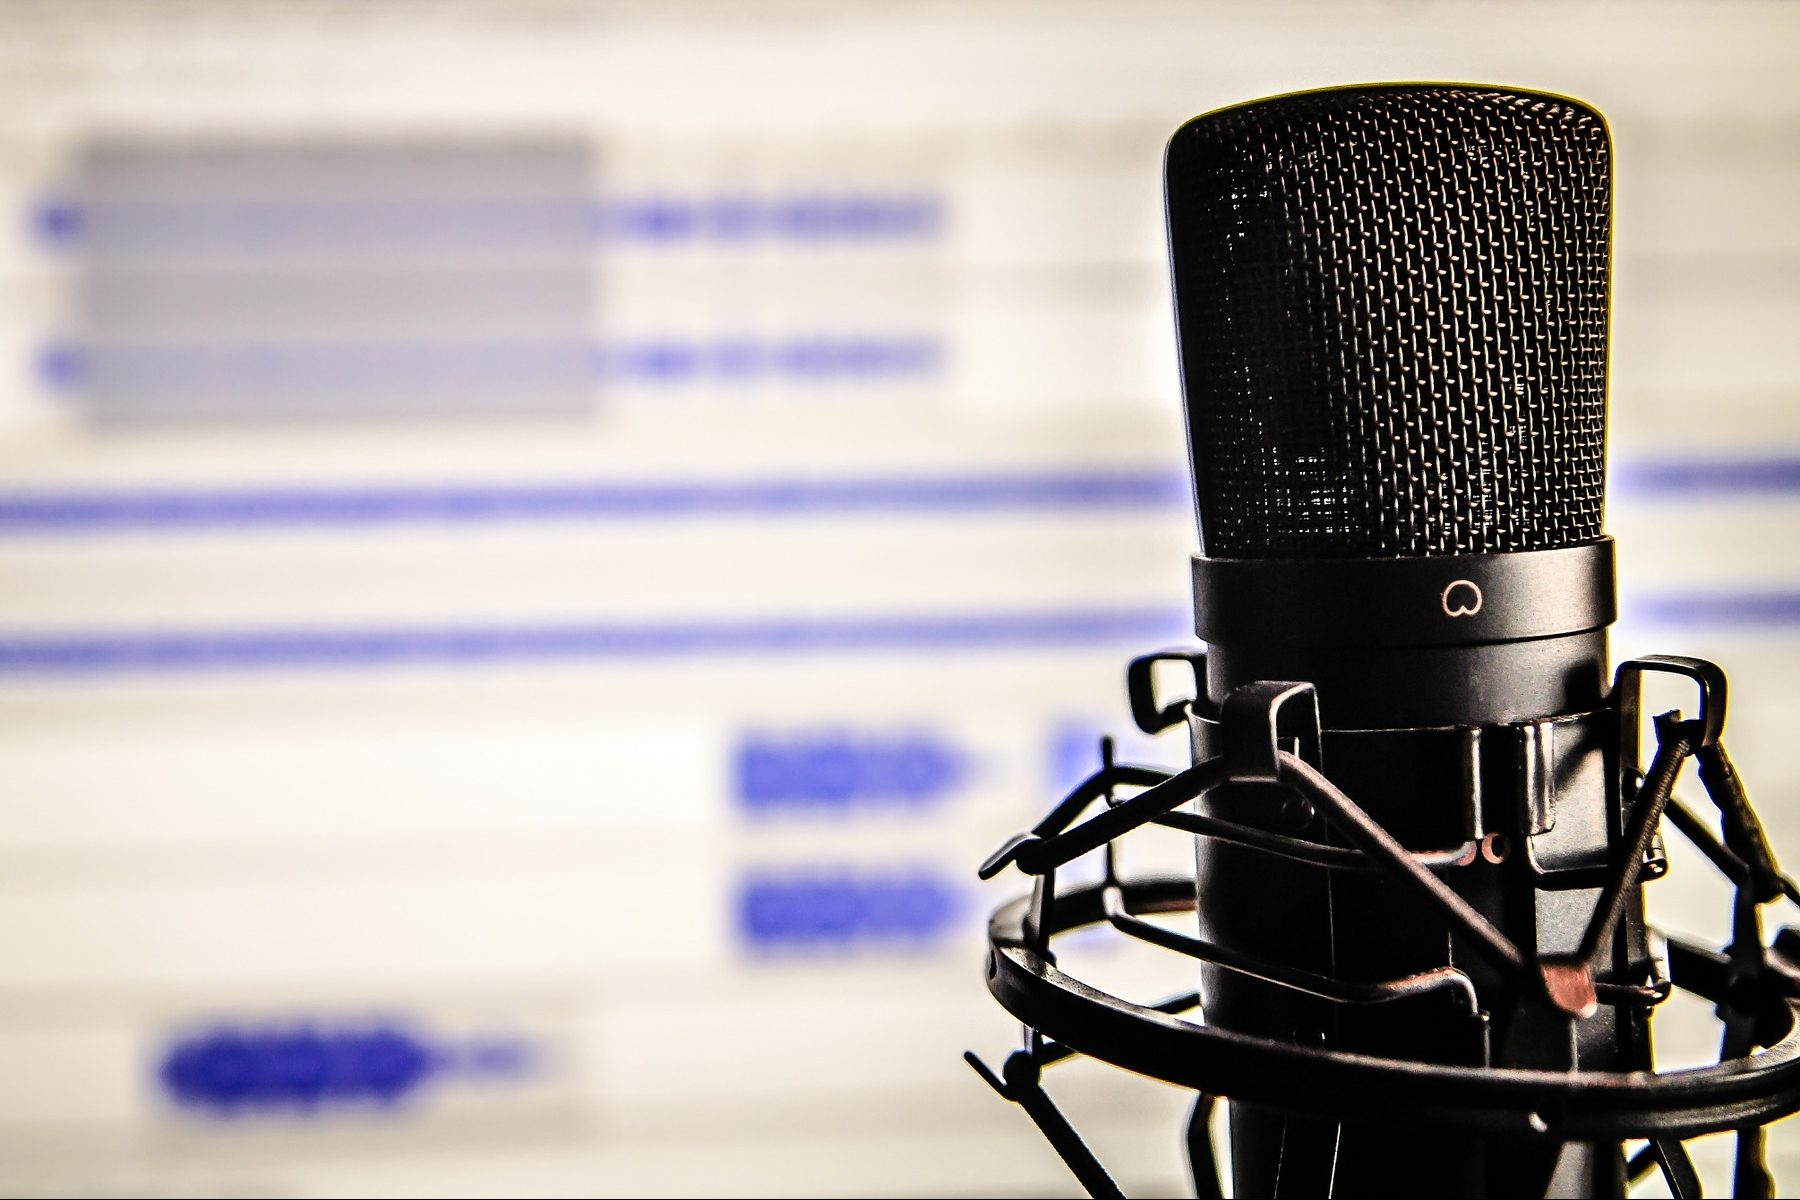 In an article about starting an actual play podcast, a microphone in front of a computer